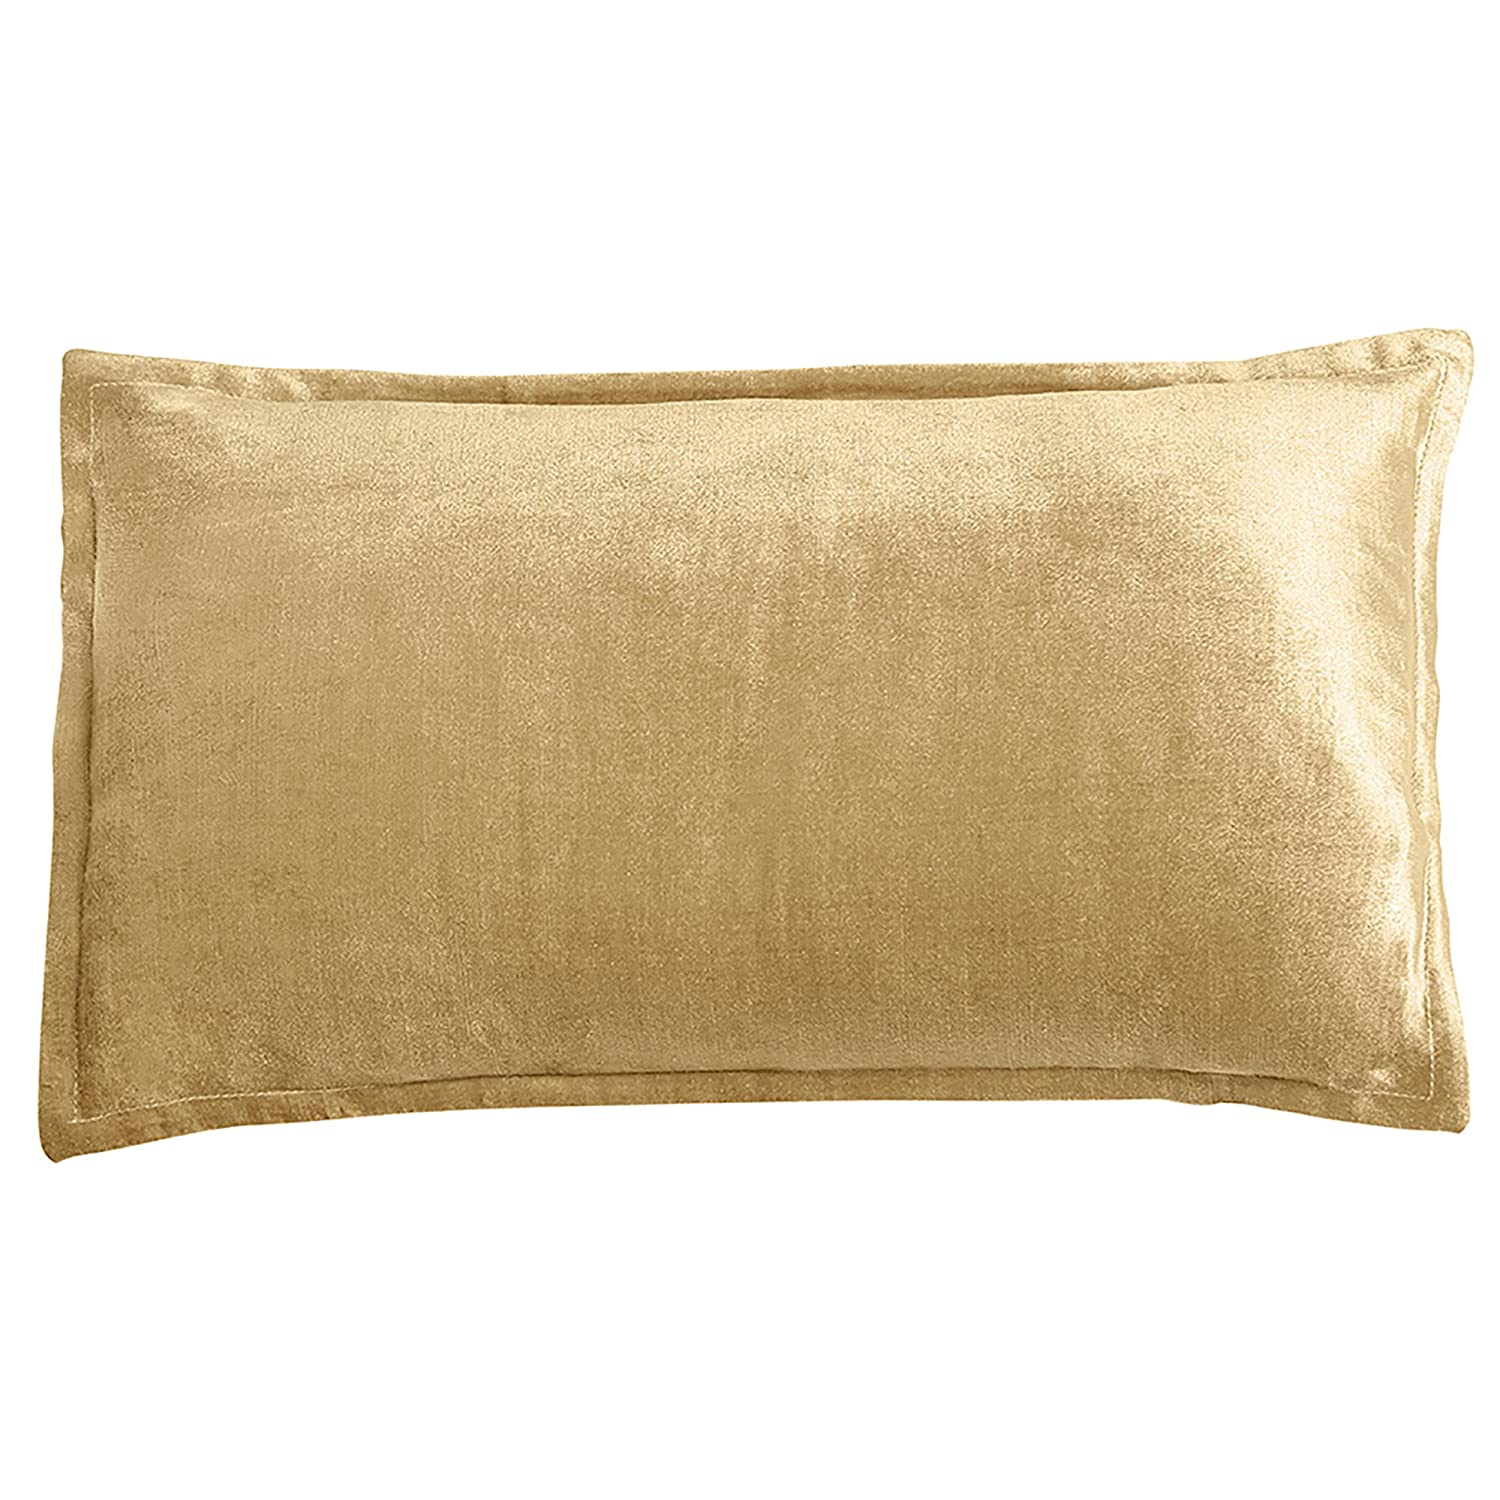 "12x20"" Velvet Lux Decorative Pillow with Feather Insert Included (Gold)"